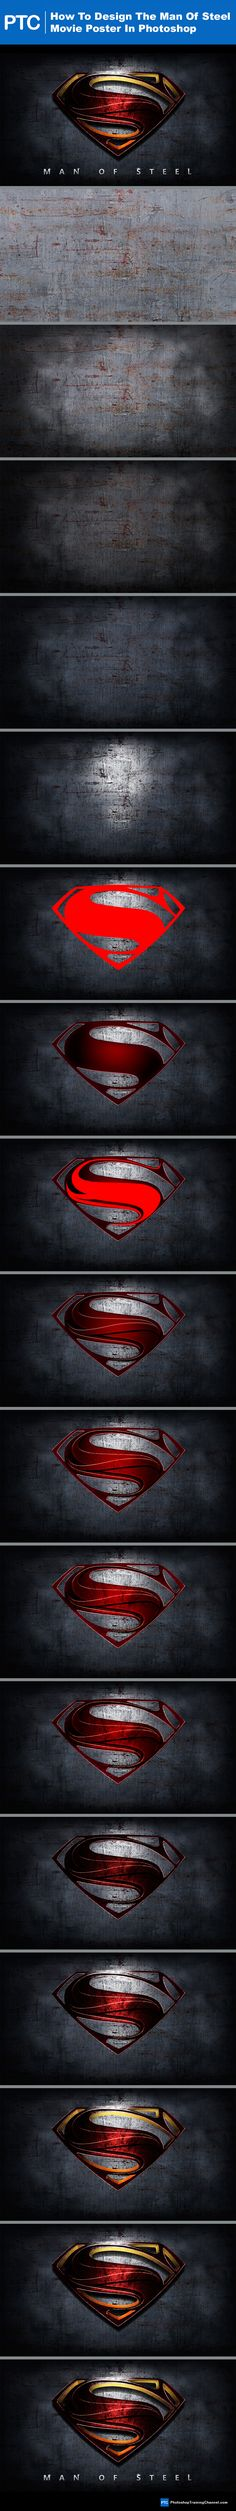 Design The Superman Man Of Steel Movie Poster In Photoshop. #Photoshop #Tutorial #Graphic #Design http://photoshoptrainingchannel.com